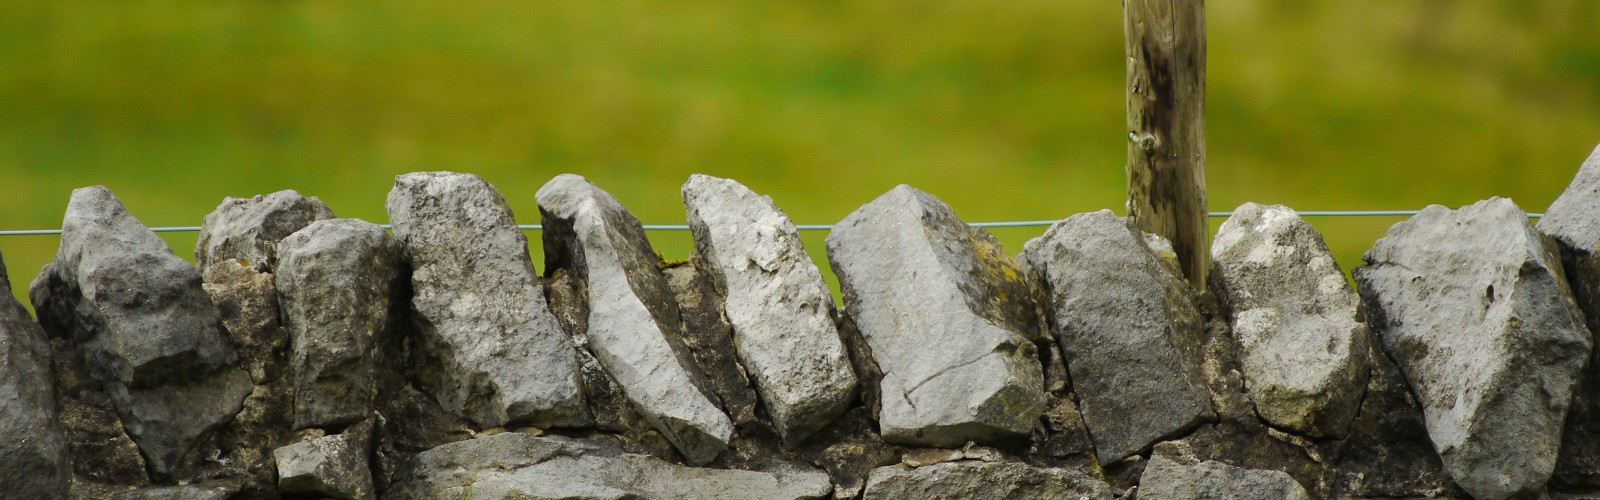 drystone wall toped by a fence with strand of plain wire (image: unsplash)